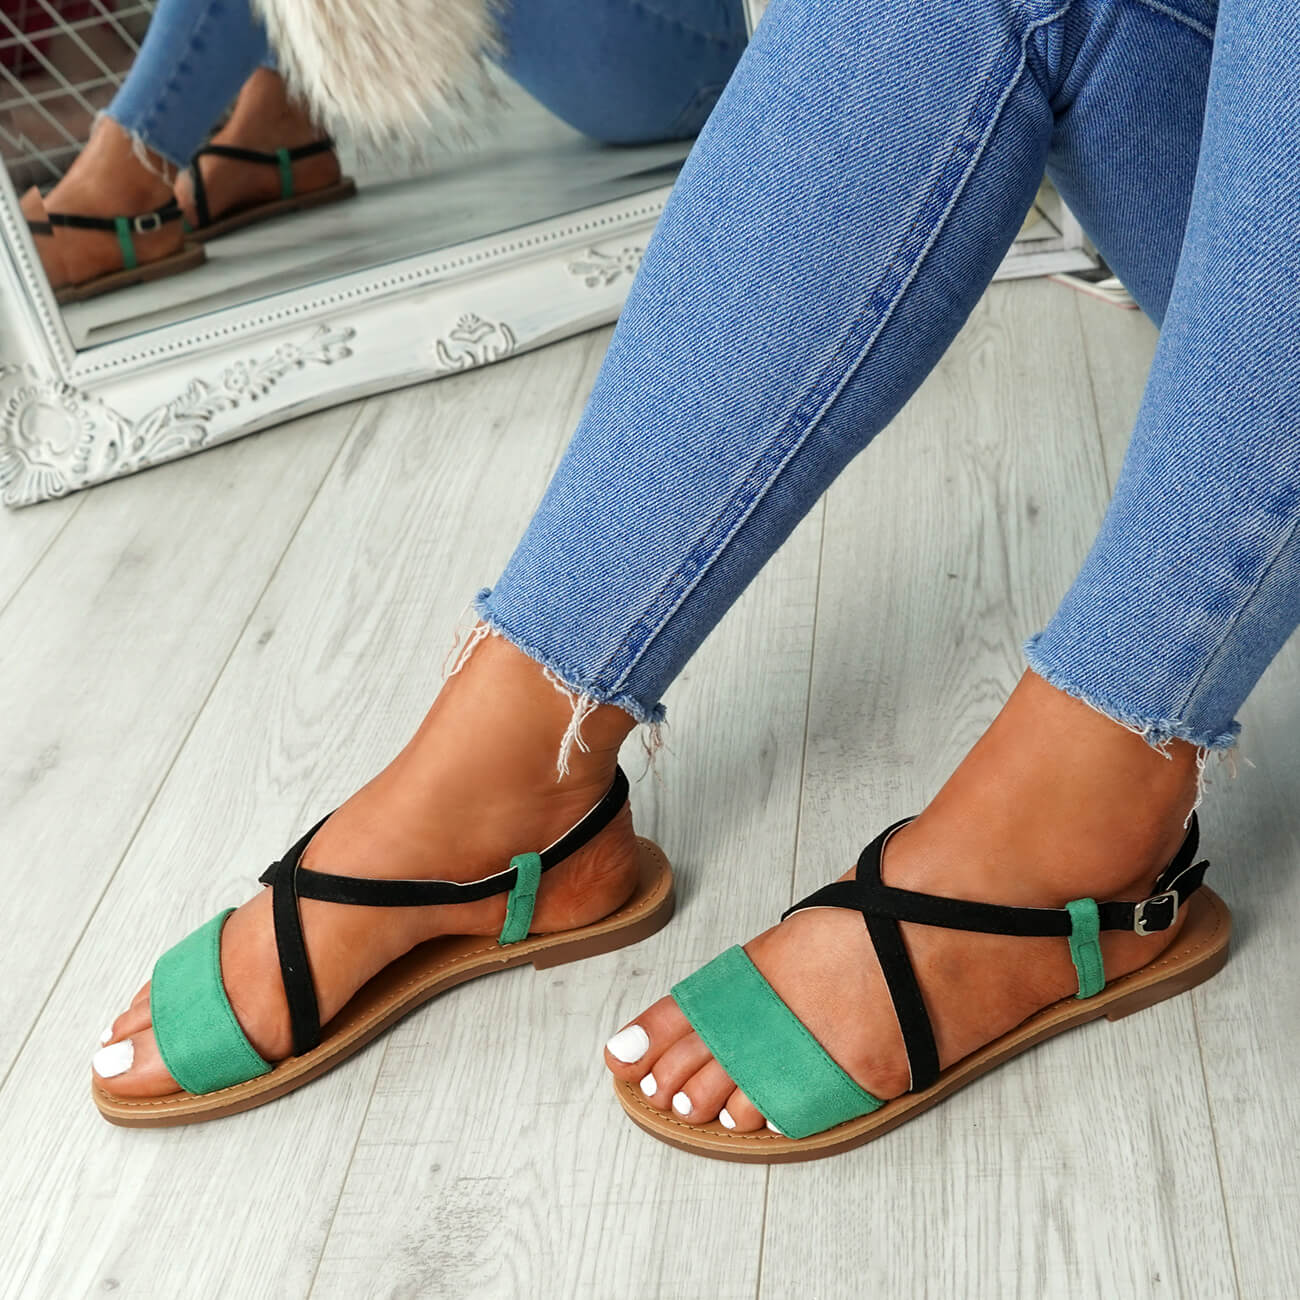 WOMENS-LADIES-ANKLE-STRAP-PEEP-TOE-FLAT-SANDALS-COMFY-SUMMER-SHOES-SIZE thumbnail 14